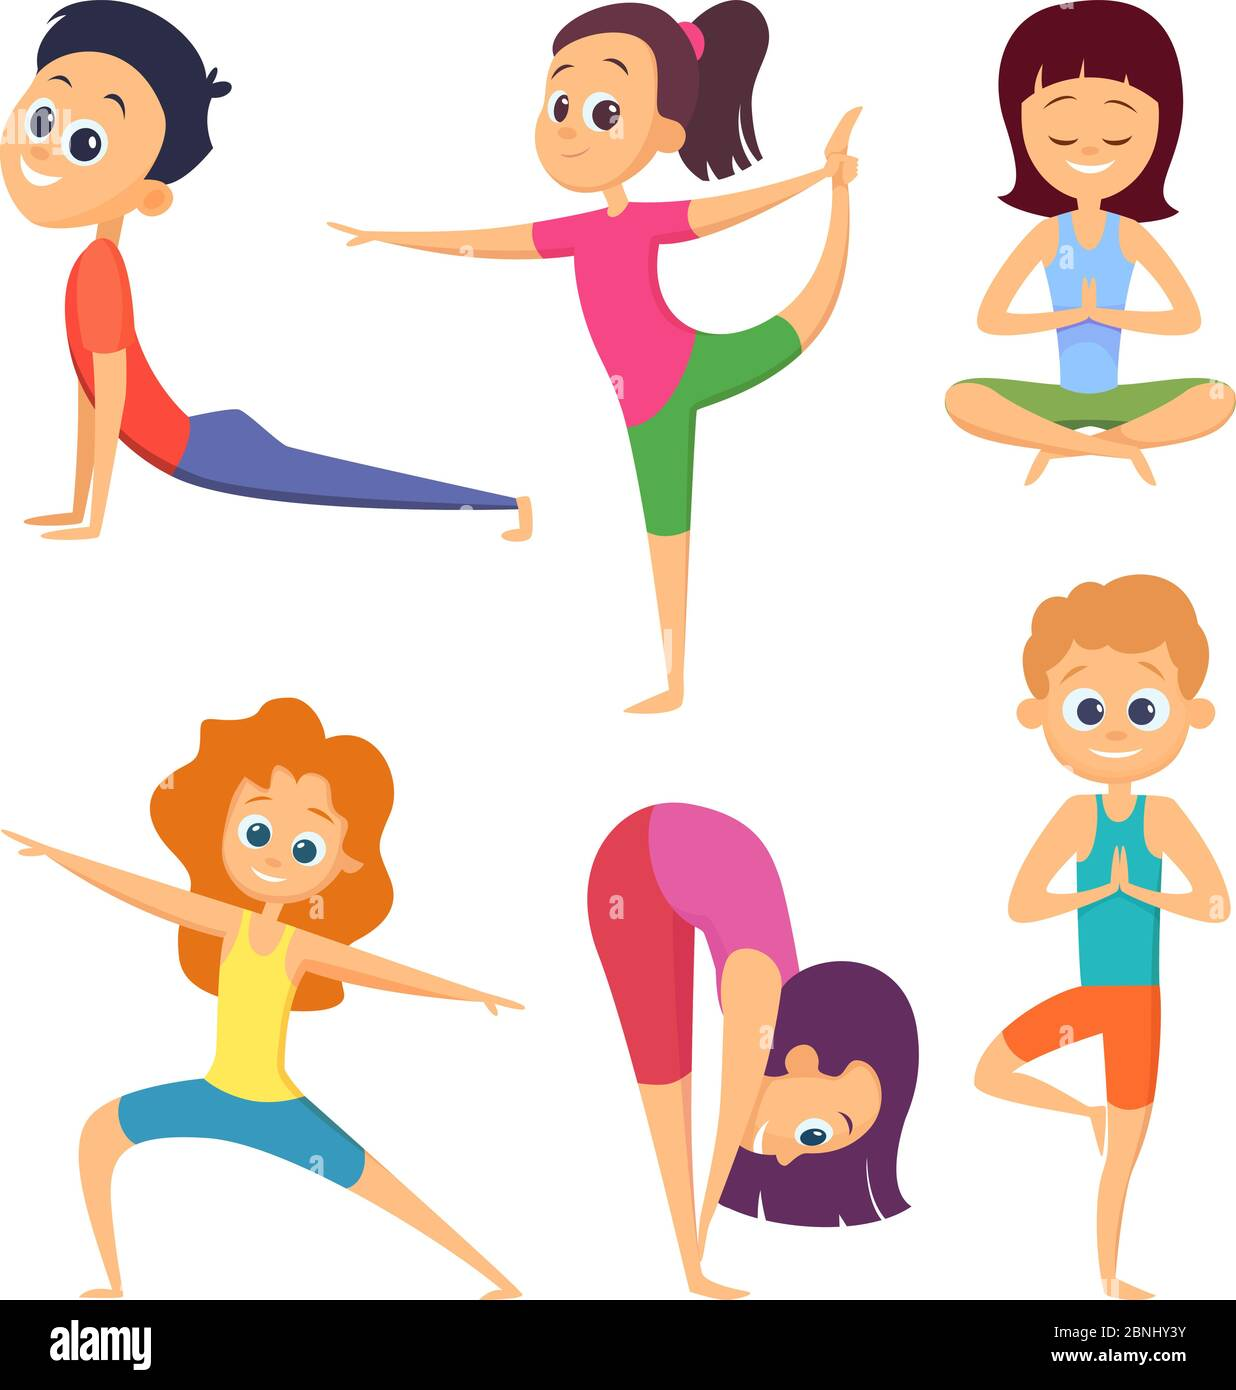 Yoga For Kids Happy Childrens Make Different Exercises Cartoon Characters Set Stock Vector Image Art Alamy